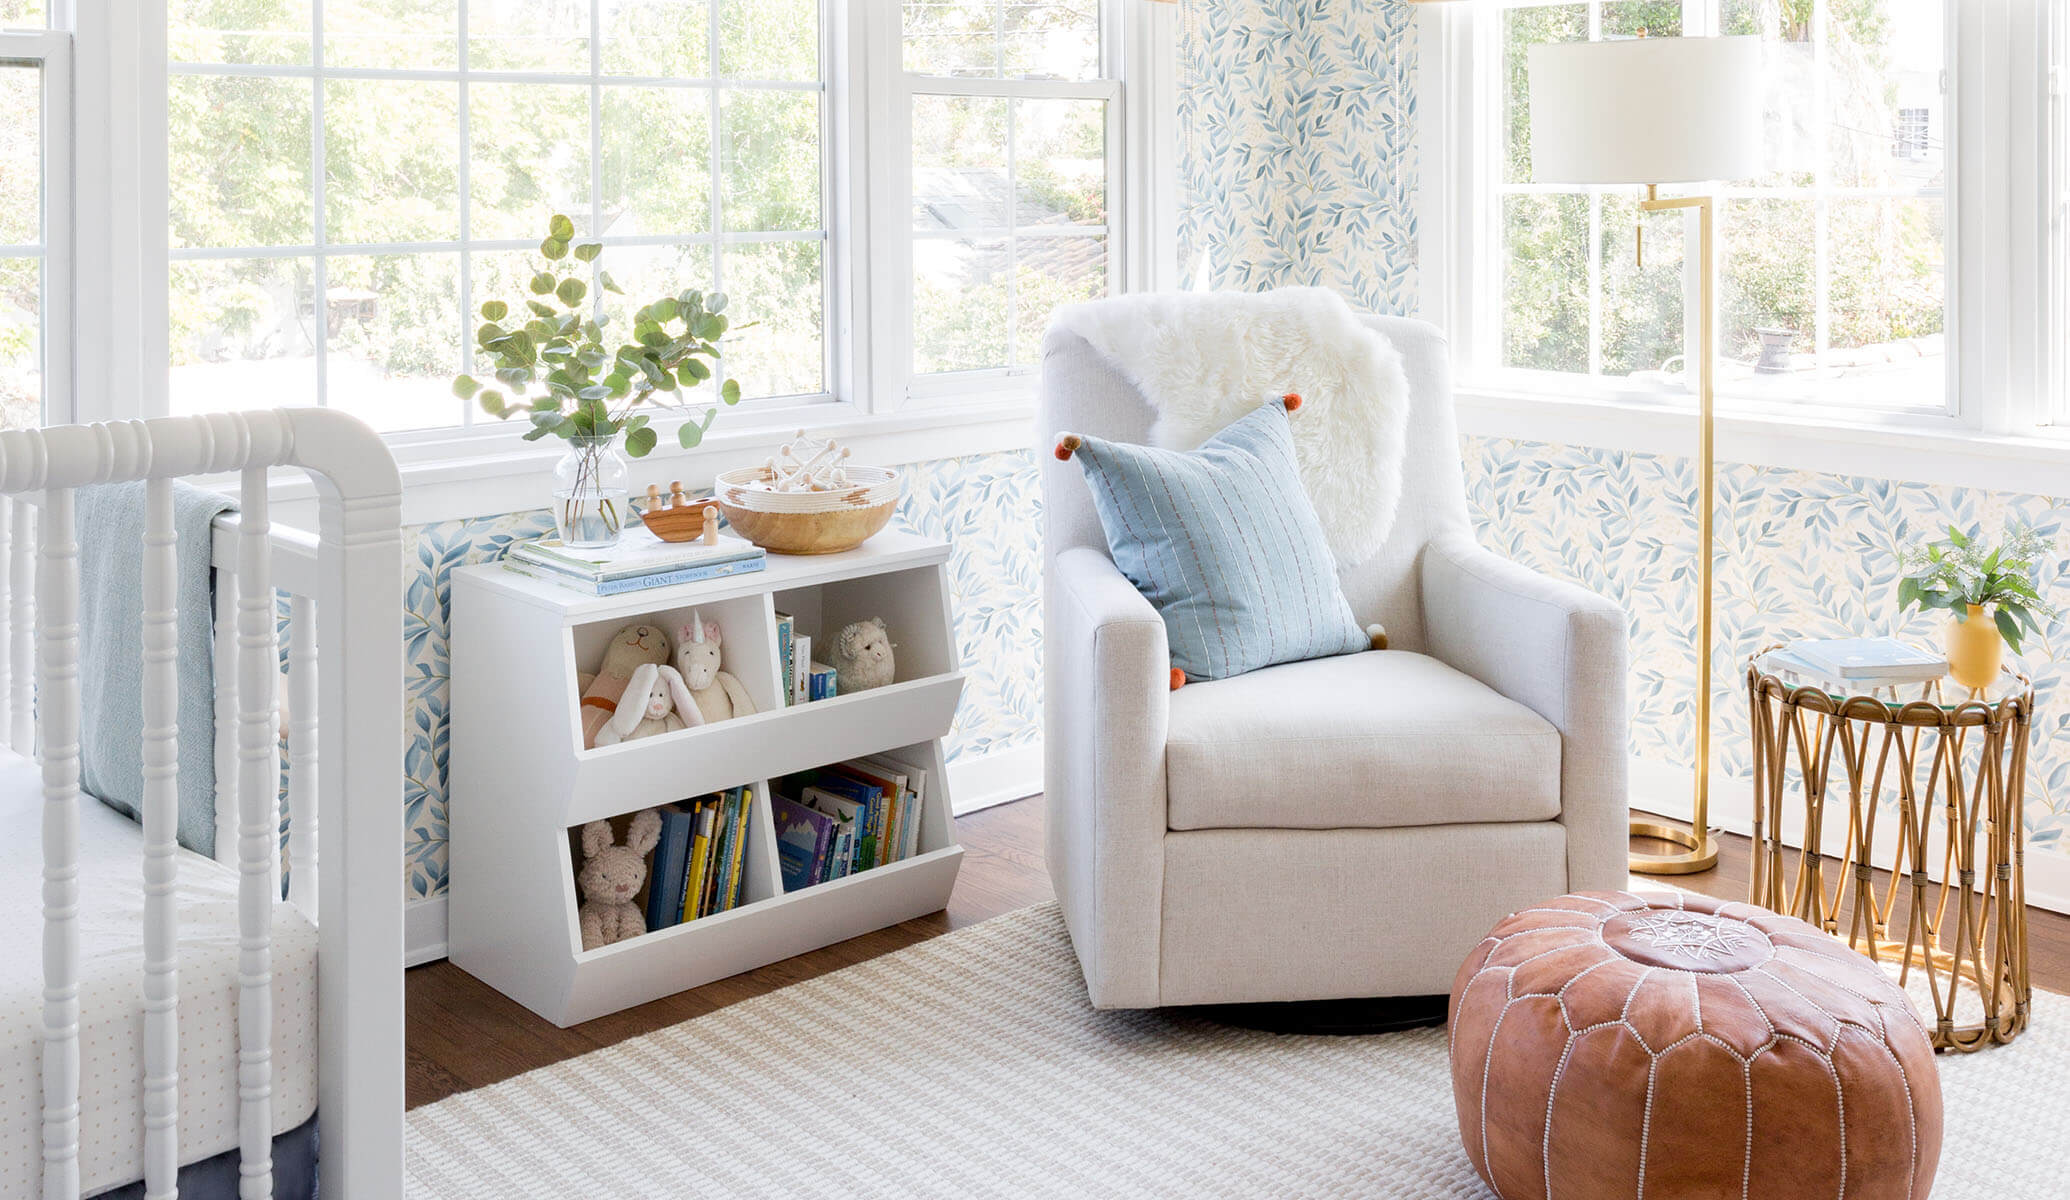 GINNY_MACDONALD_LULU_AND_GEORGIA_NURSERY_FEATURED_IMAGE (1)